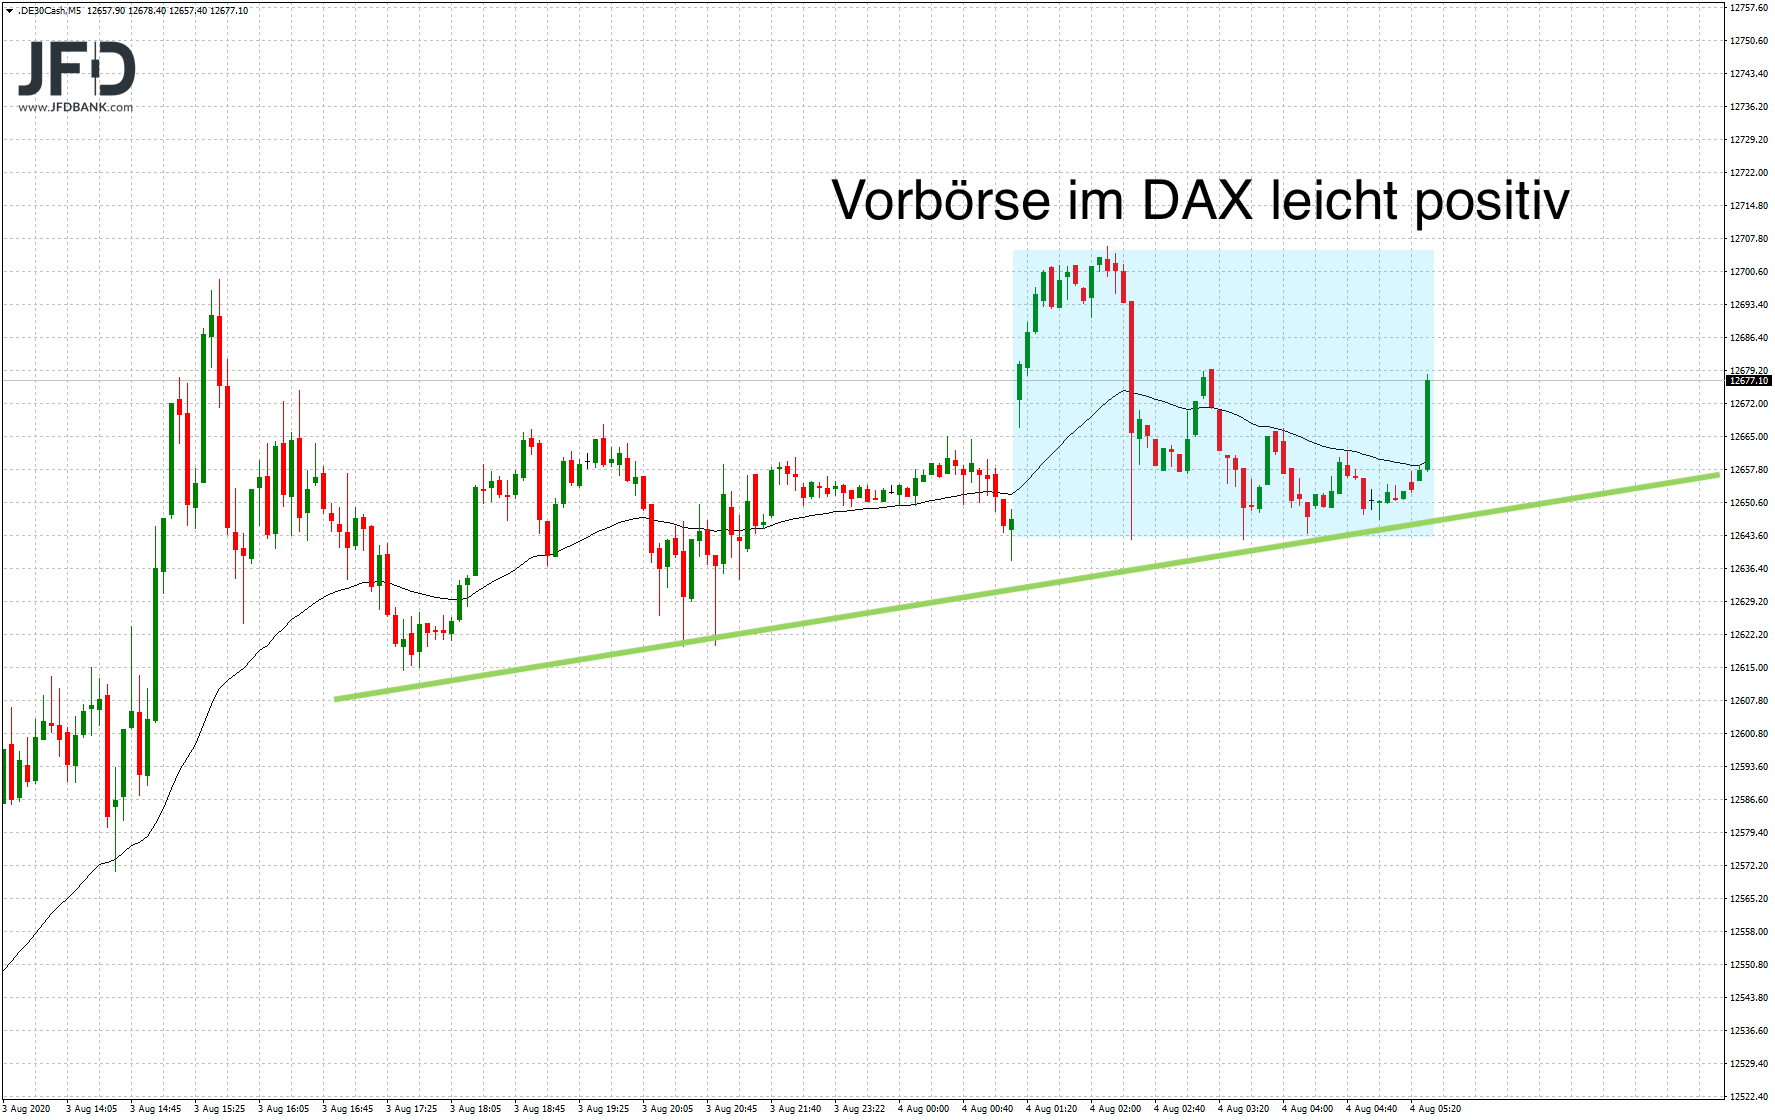 DAX-Start-in-den-August-gelungen-Kommentar-JFD-Bank-GodmodeTrader.de-7